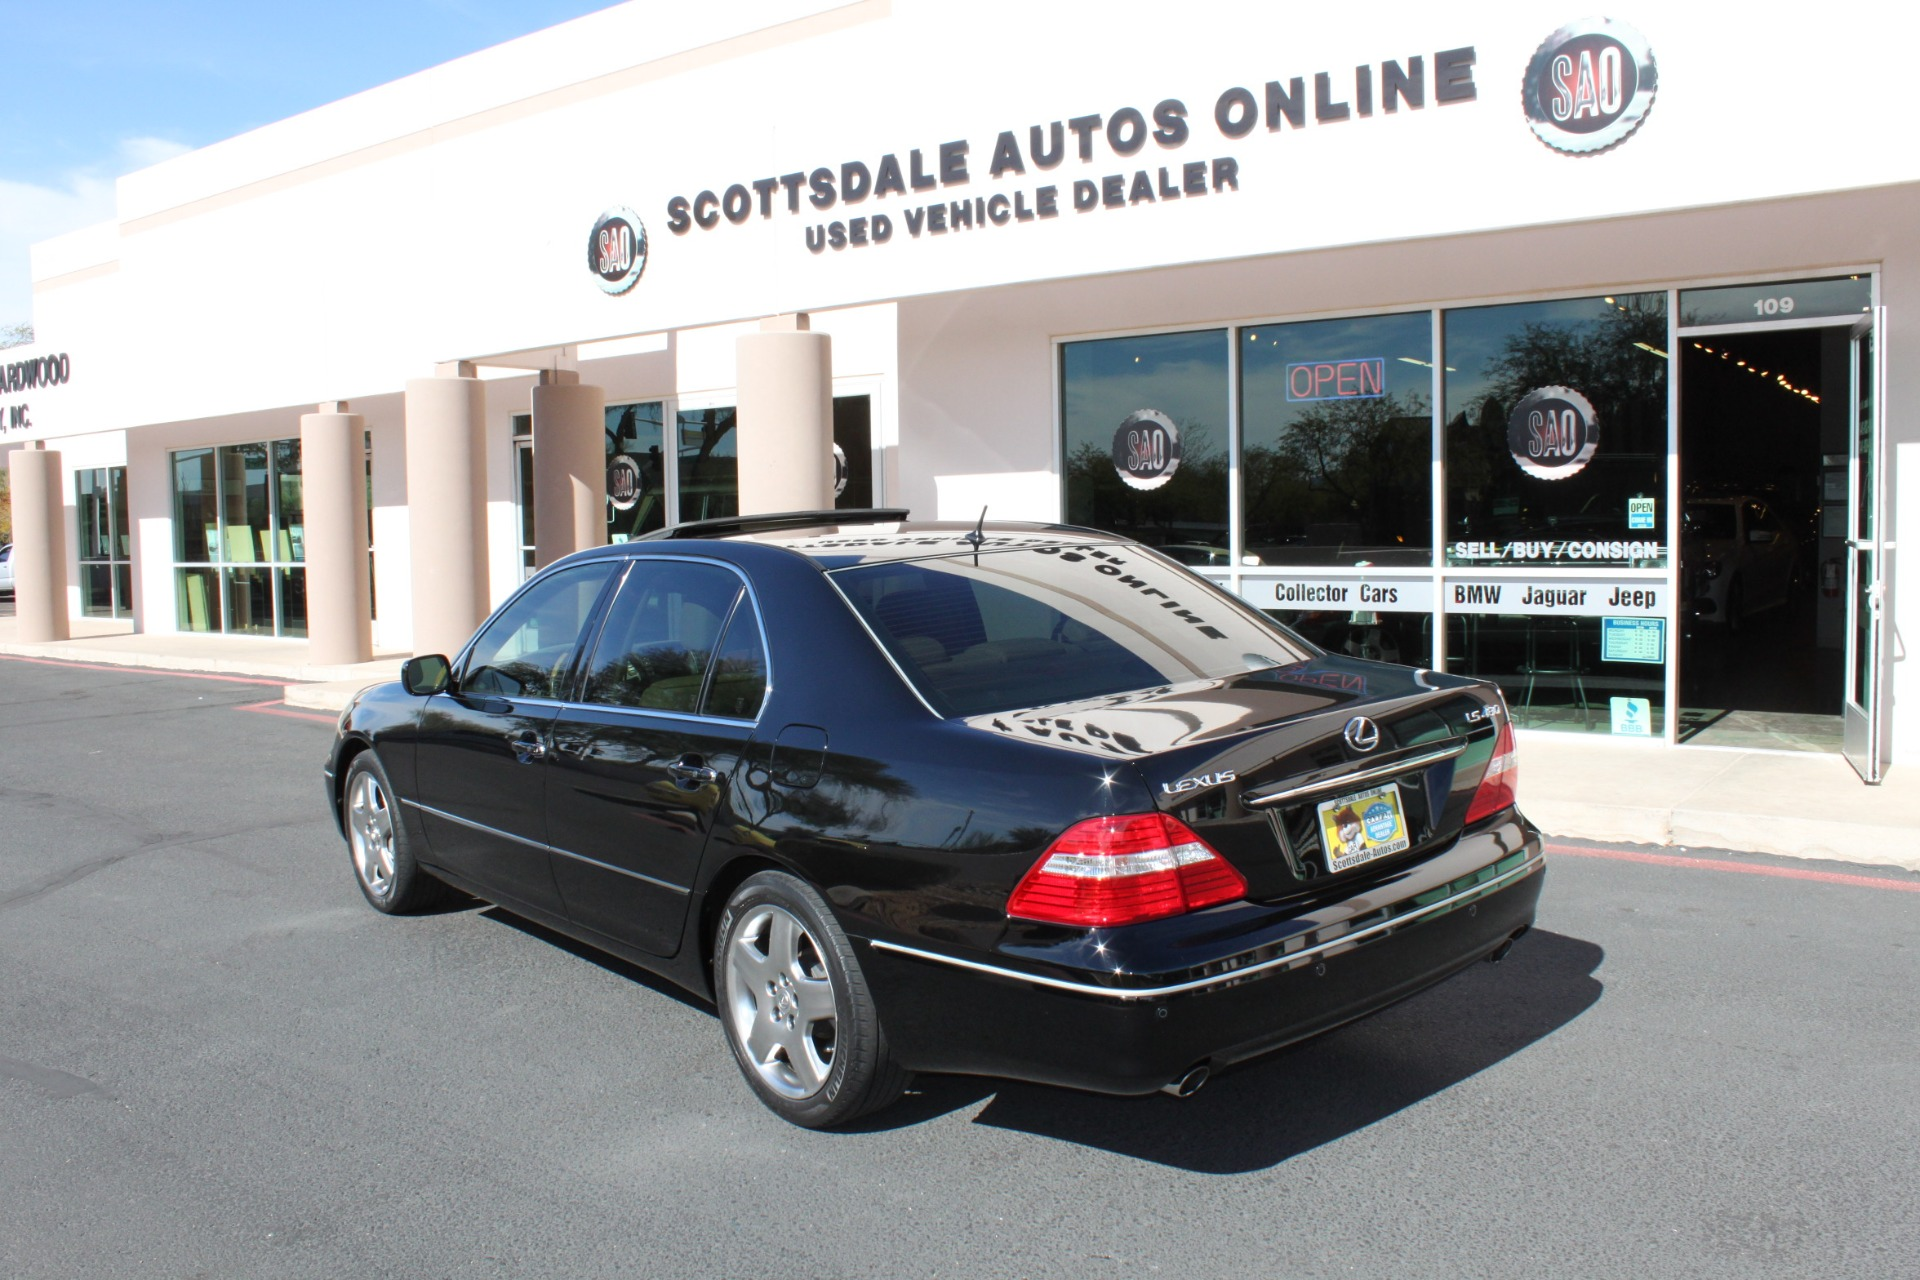 Used-2005-Lexus-LS-430-Dodge